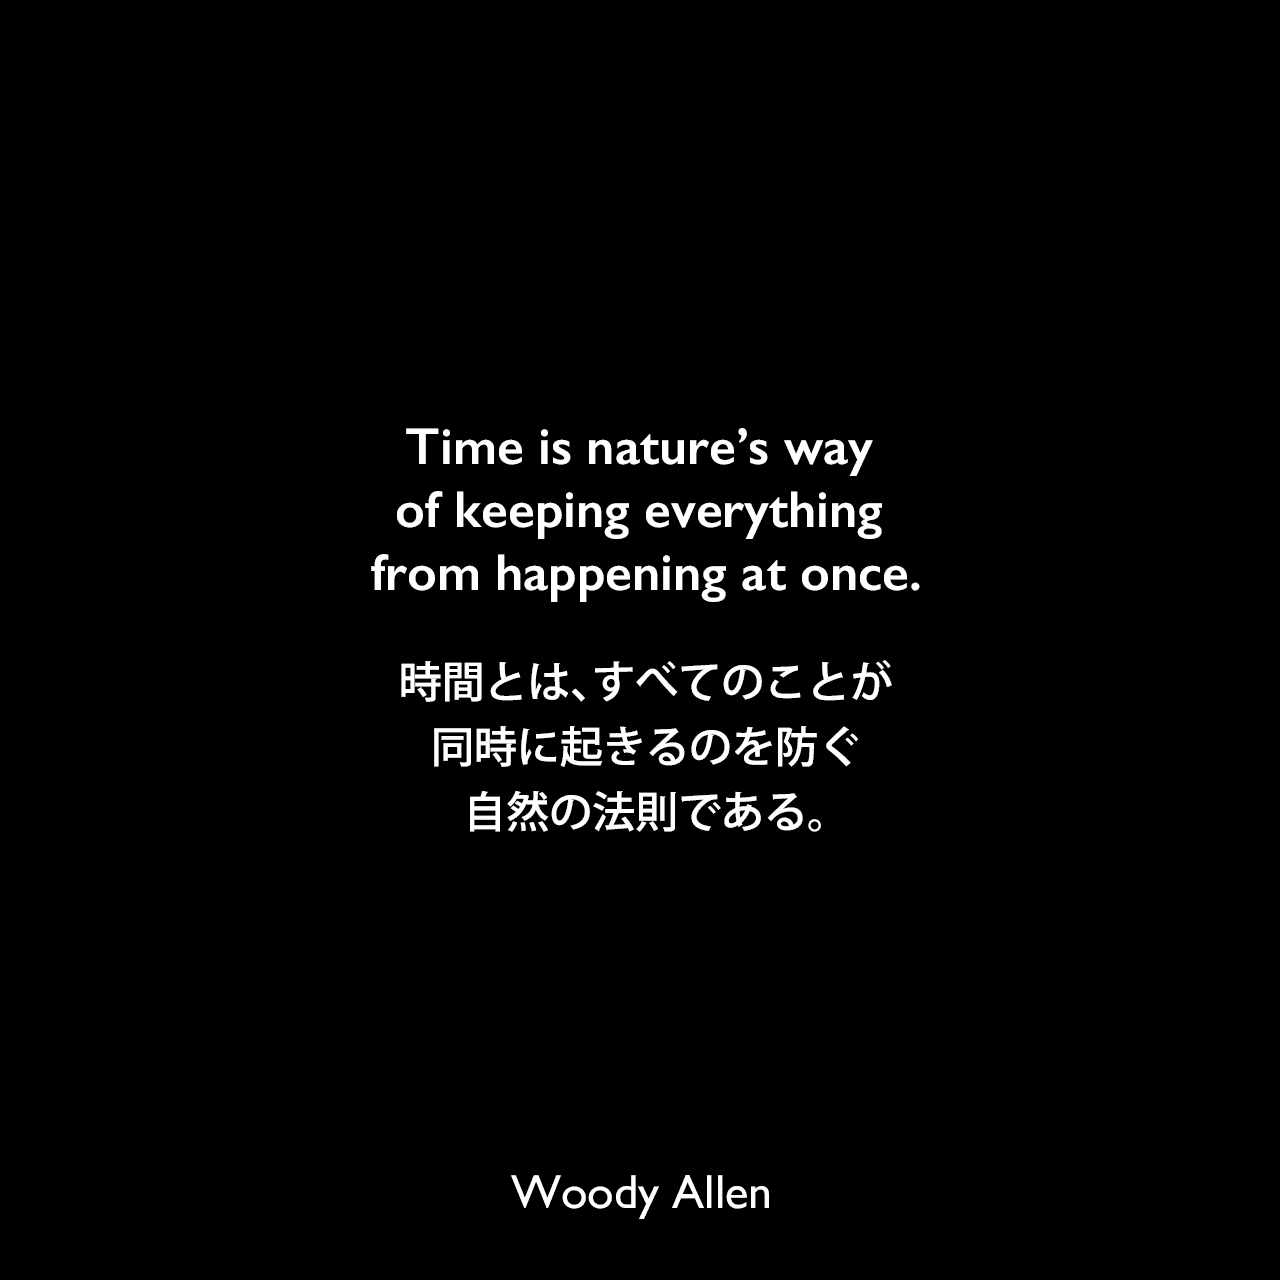 Time is nature's way of keeping everything from happening at once.時間とは、すべてのことが同時に起きるのを防ぐ、自然の法則である。Woody Allen